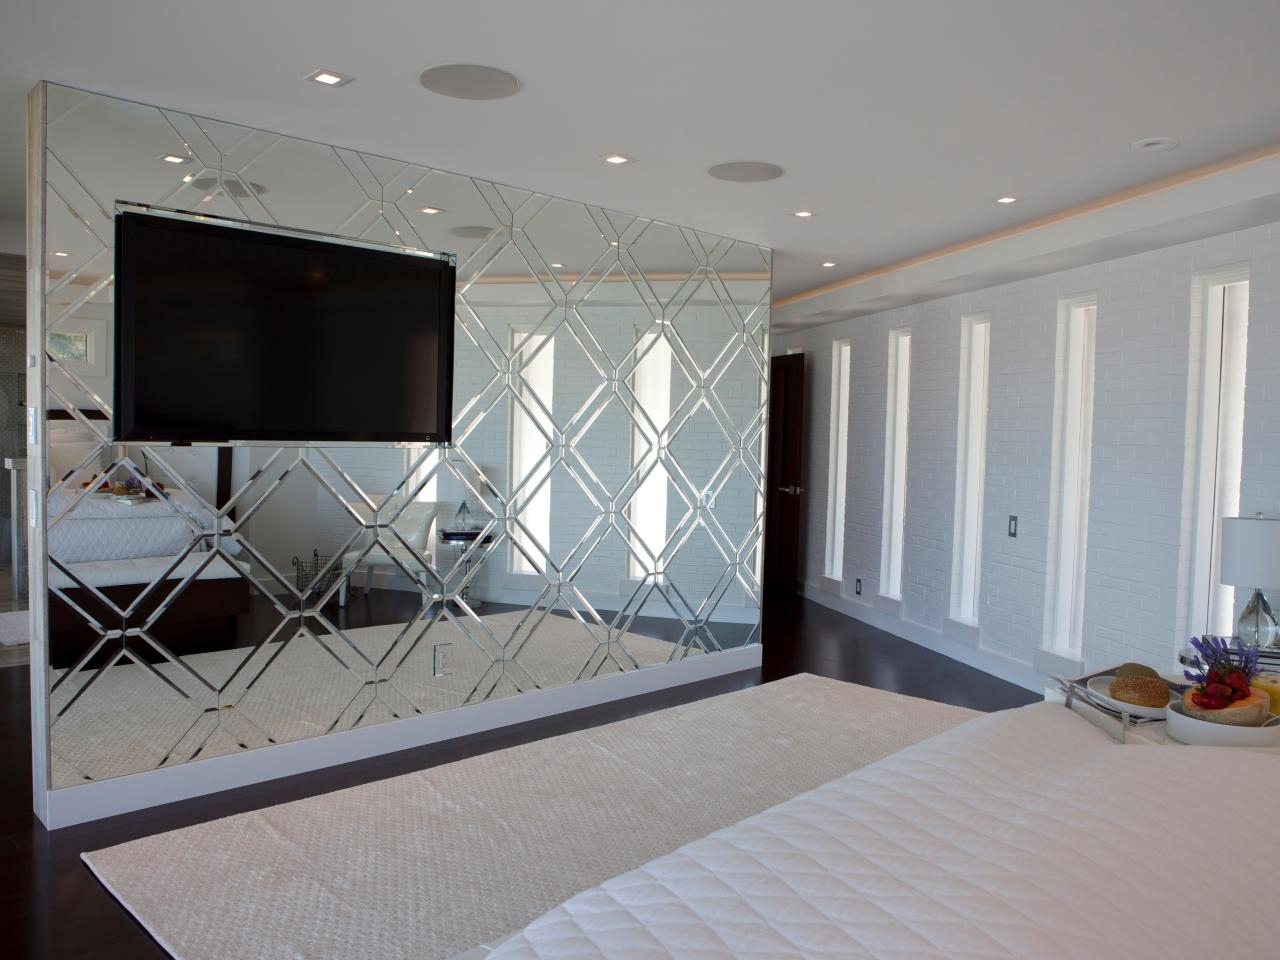 Well Known Bedroom Wall Mirror Houzz Design Ideas Bathroom Mirrors Simple In Full Length Decorative Wall Mirrors (View 20 of 20)